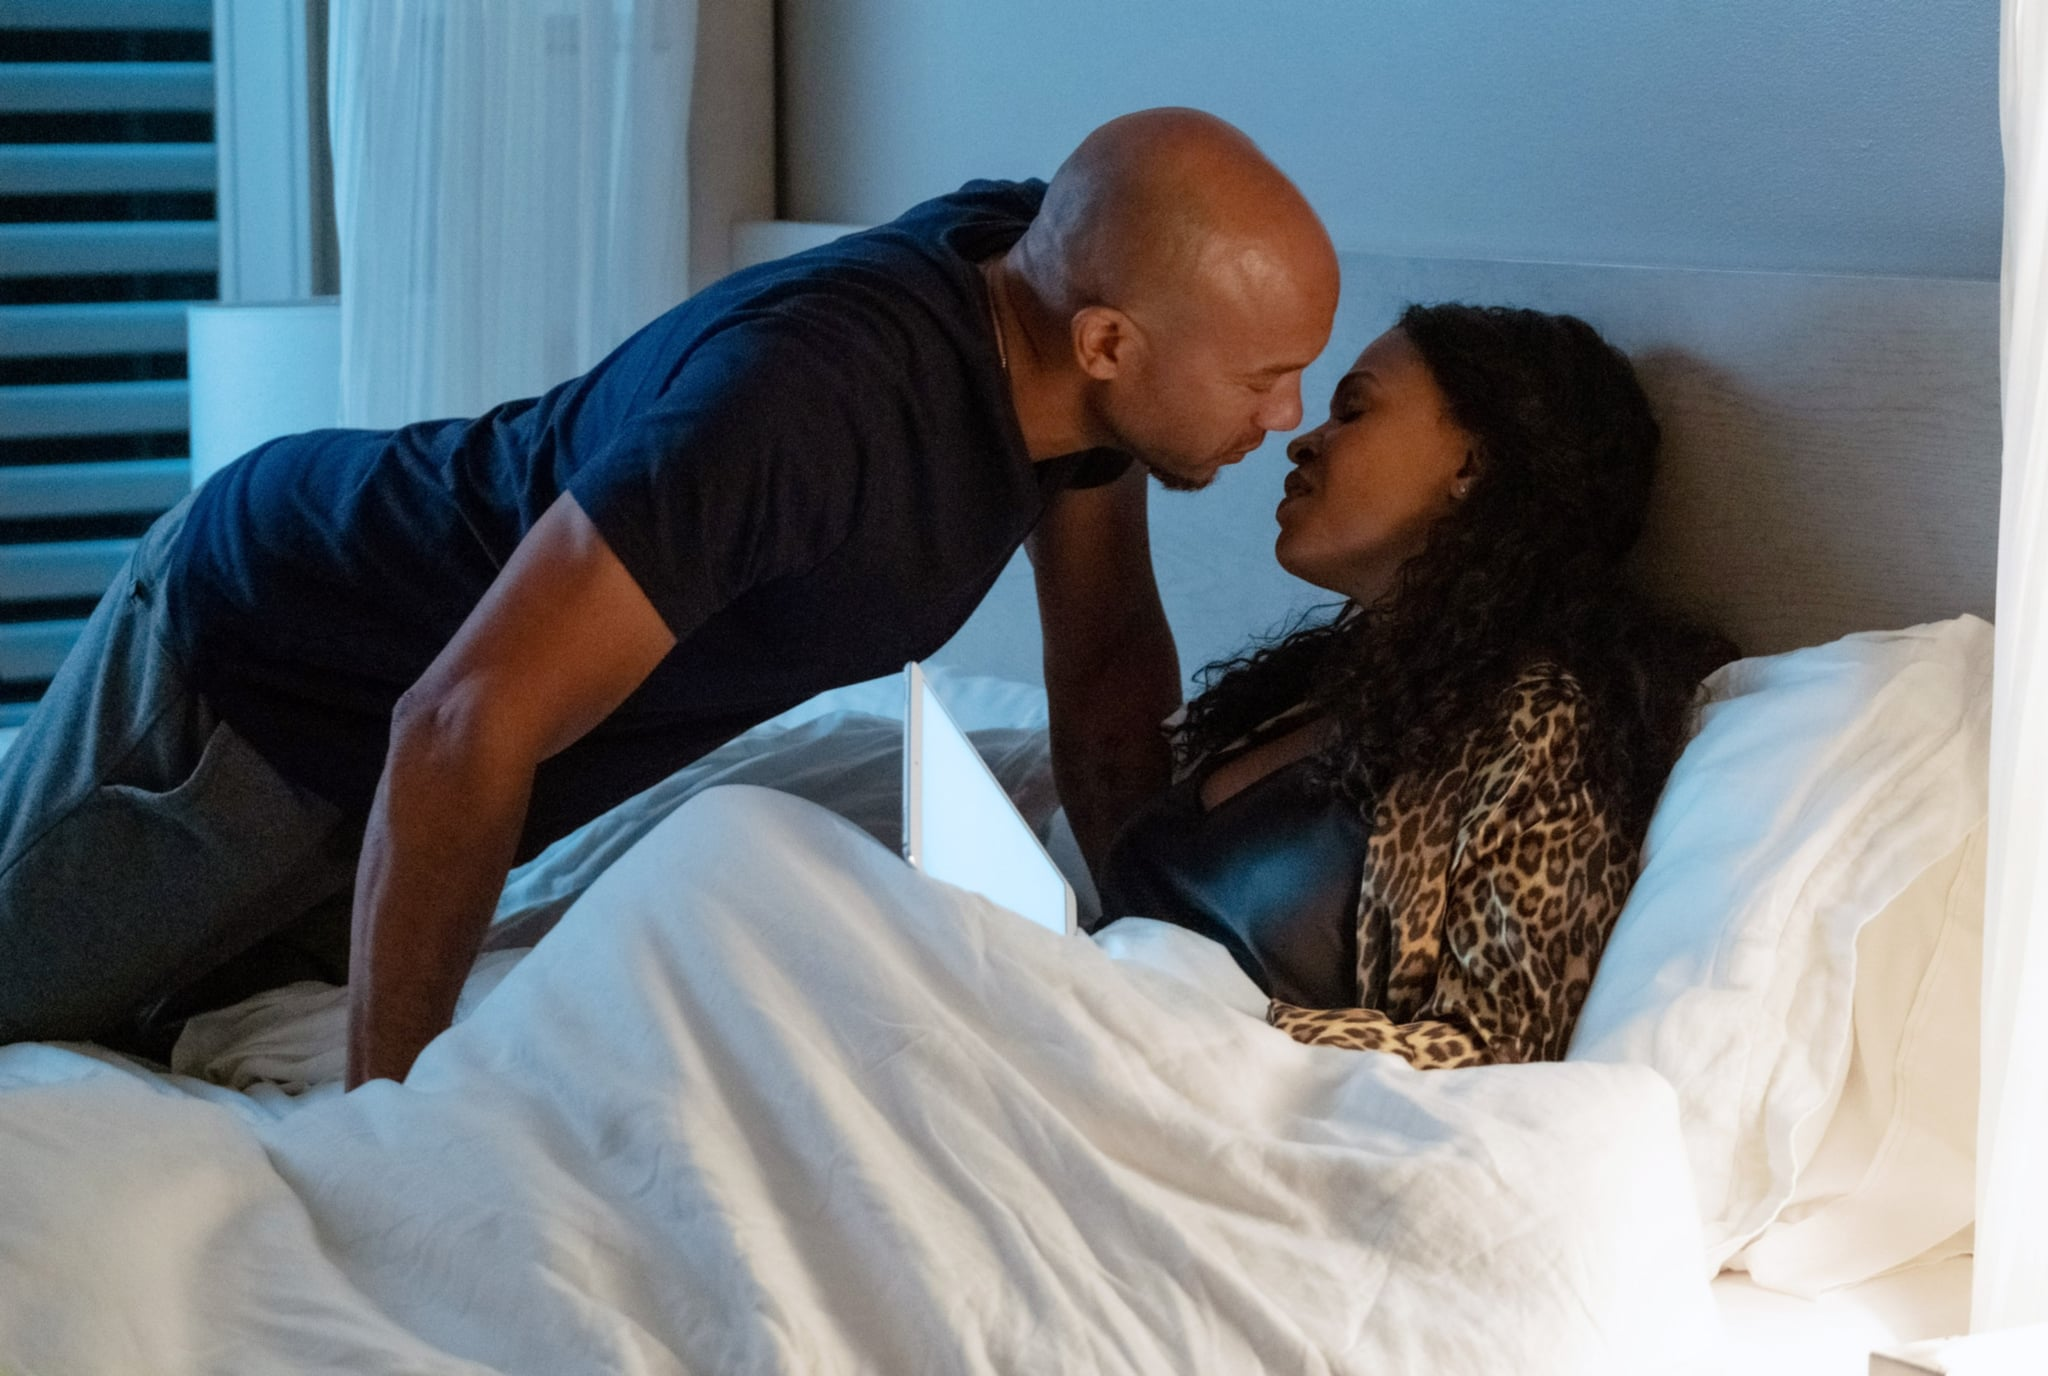 FATAL AFFAIR, from left: Stephen Bishop, Nia Long, 2020. ph: Beth Dubber / Netflix / Courtesy Everett Collection